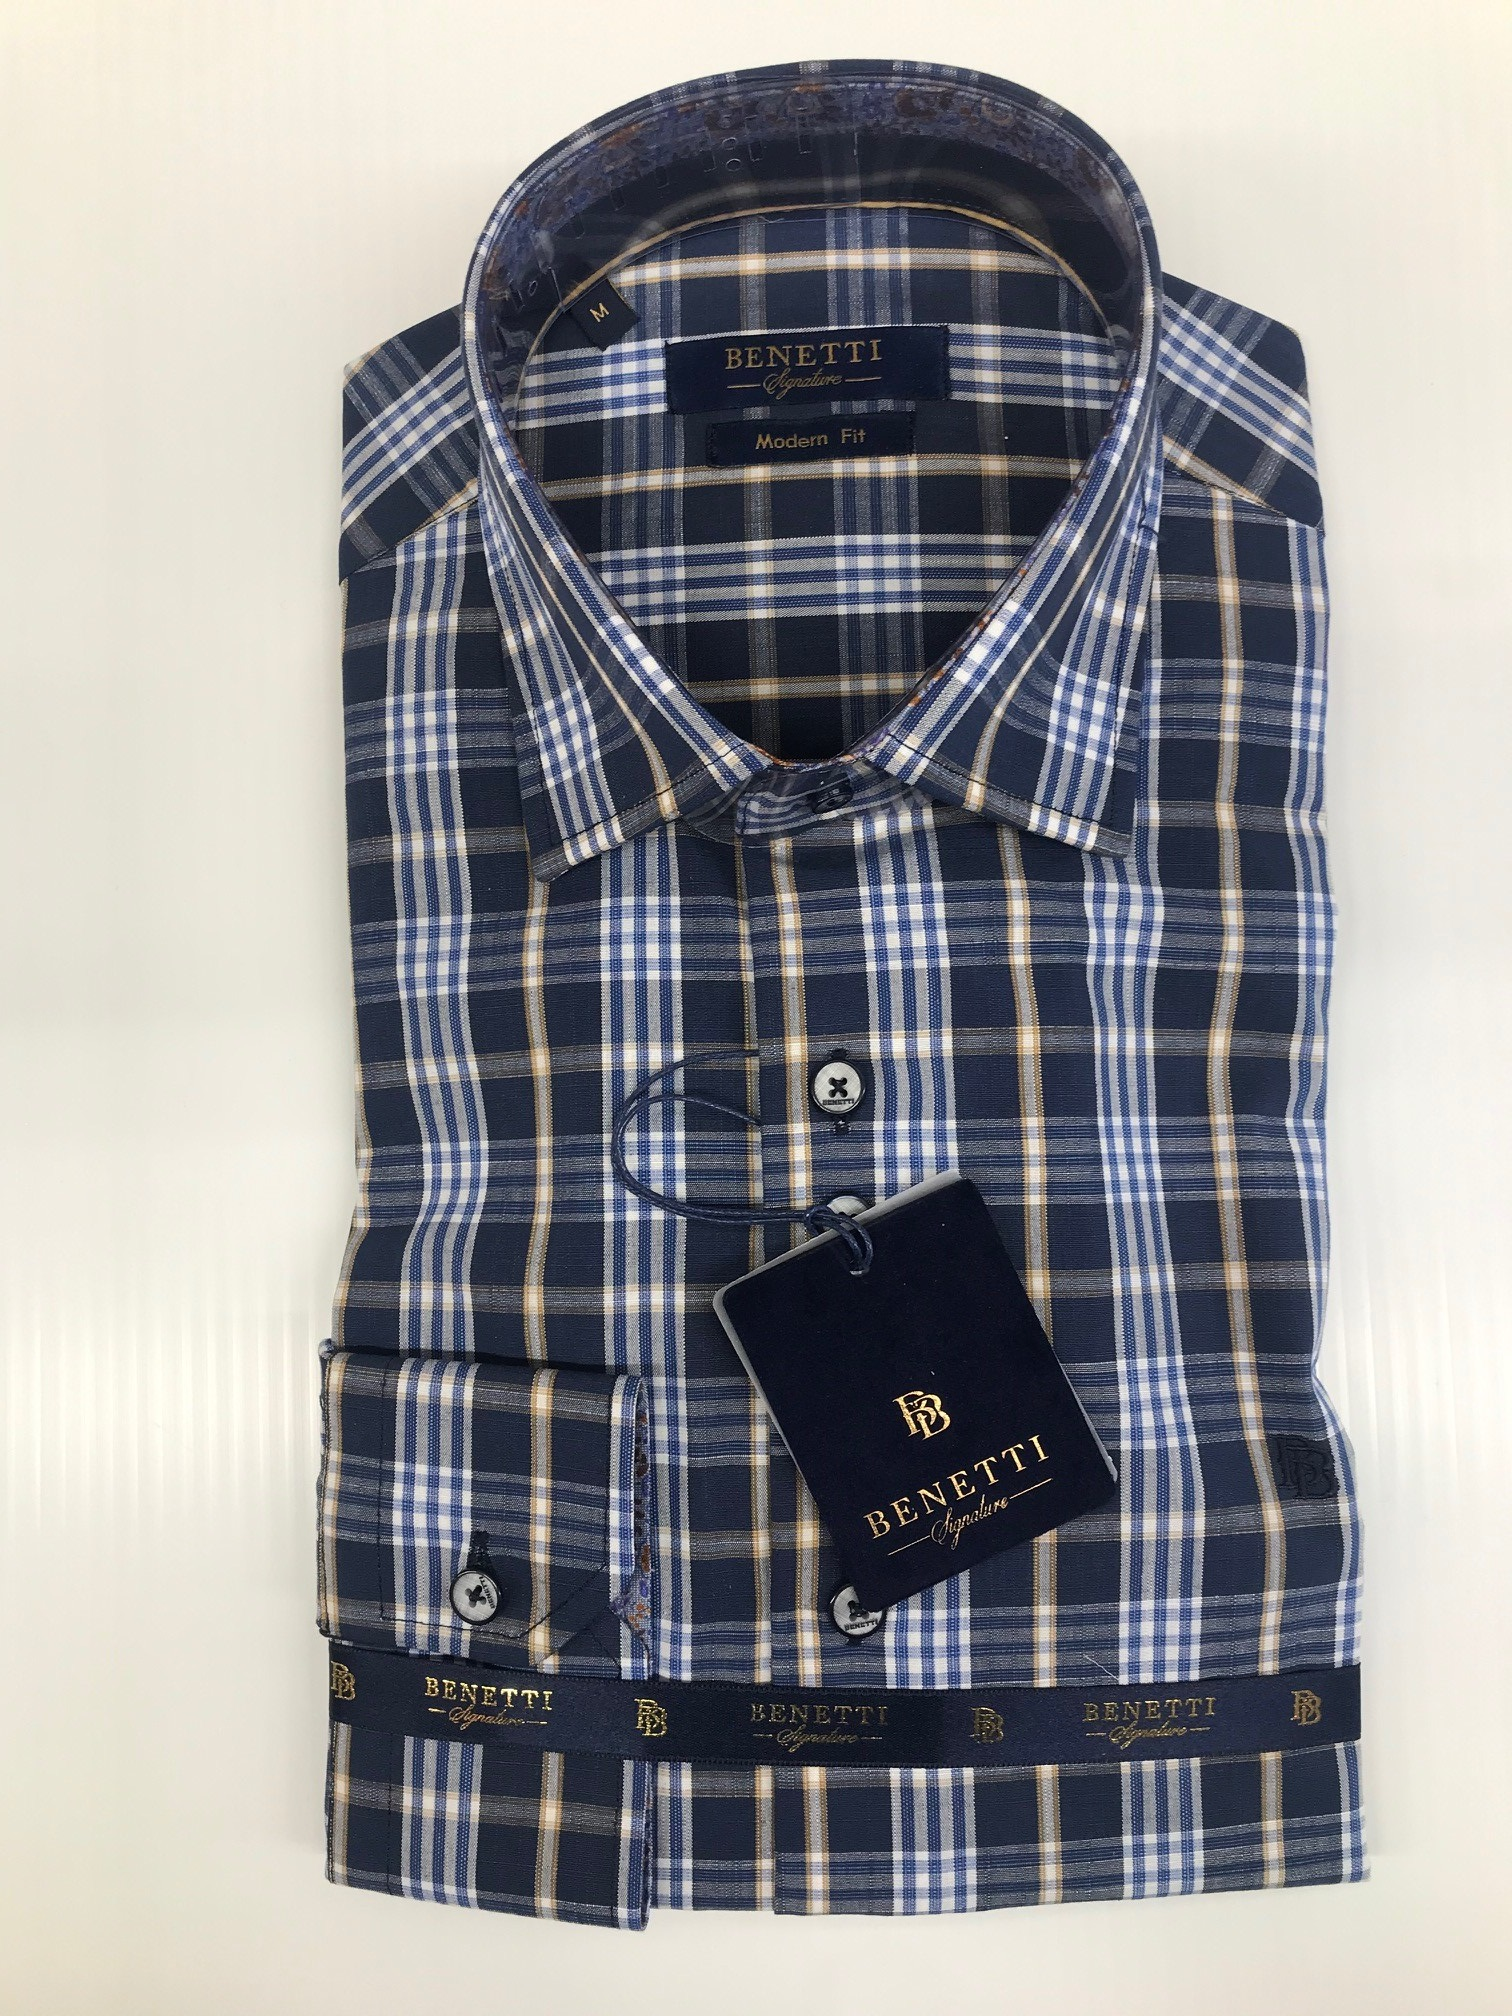 Benetti - Modern Fit Shirt